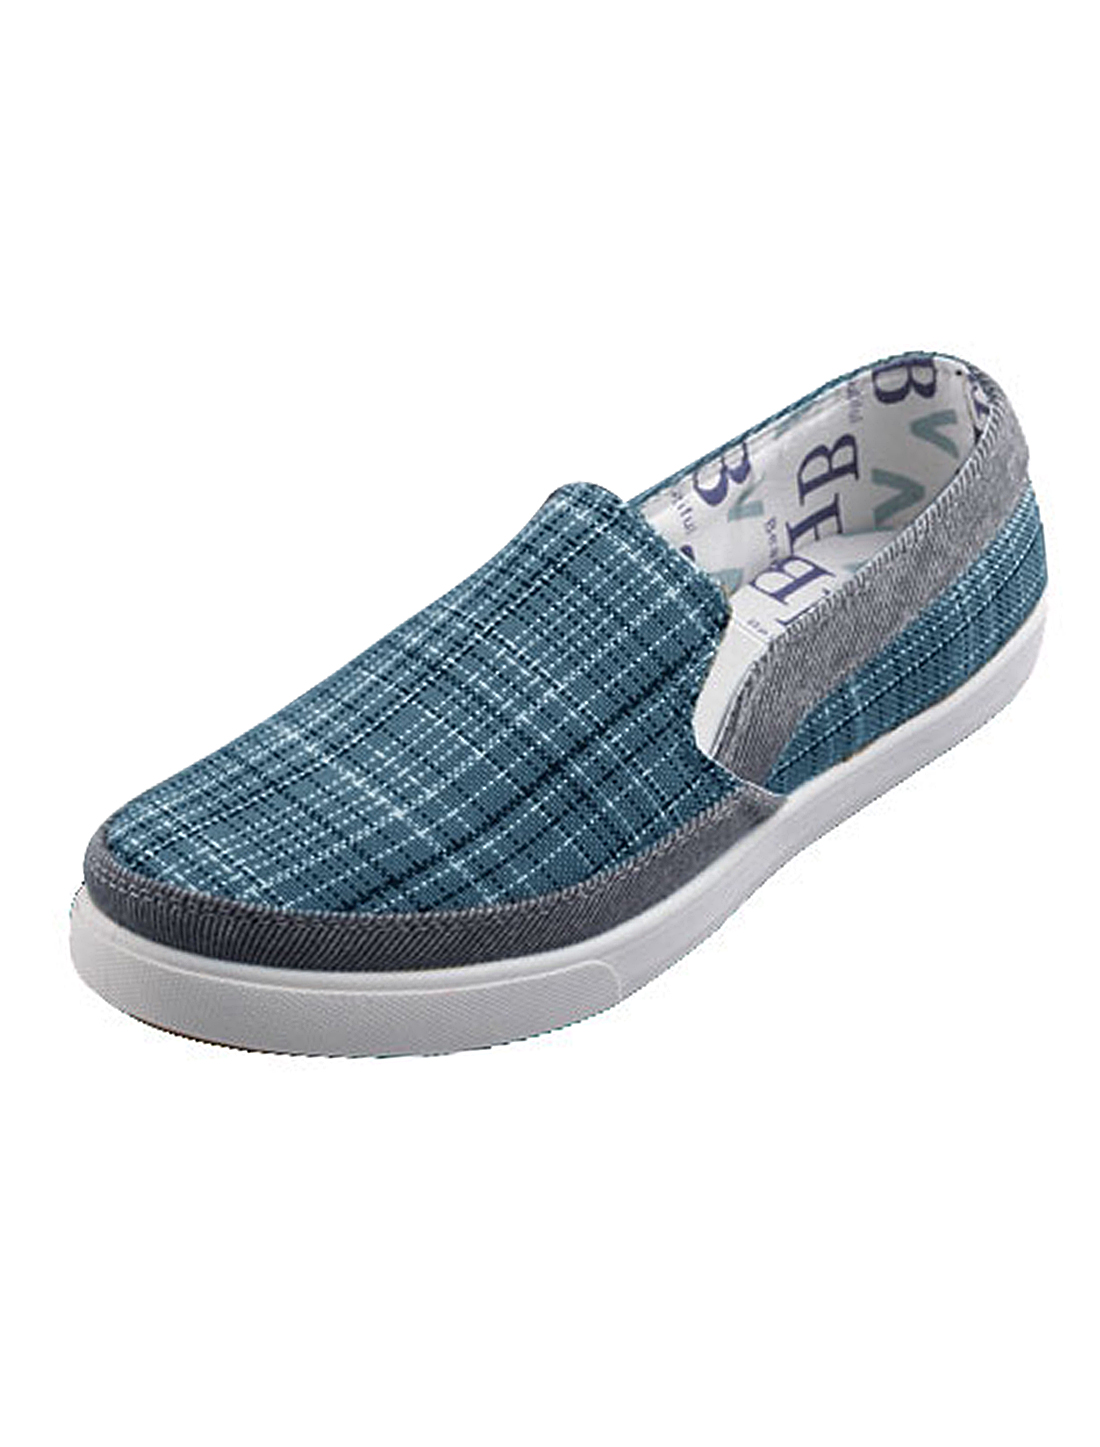 Blue US Size 11 Fashionable Fabric Lining Men Slip On Canvas Shoes